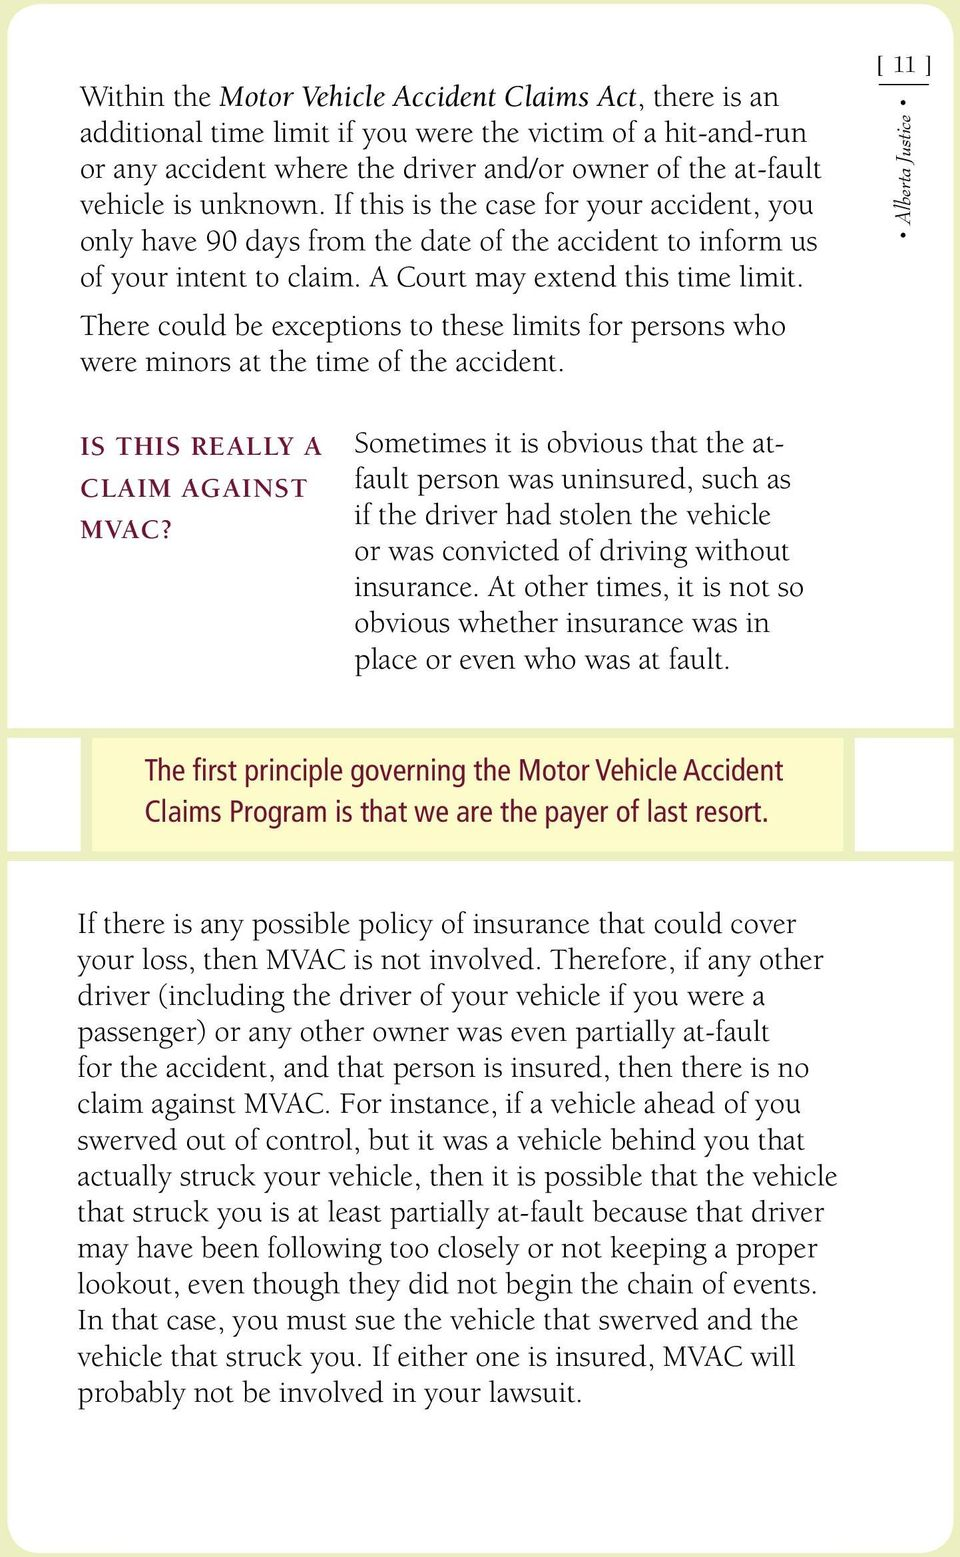 There could be exceptions to these limits for persons who were minors at the time of the accident. [ 11 ] IS THIS REALLY A CLAIM AGAINST MVAC?